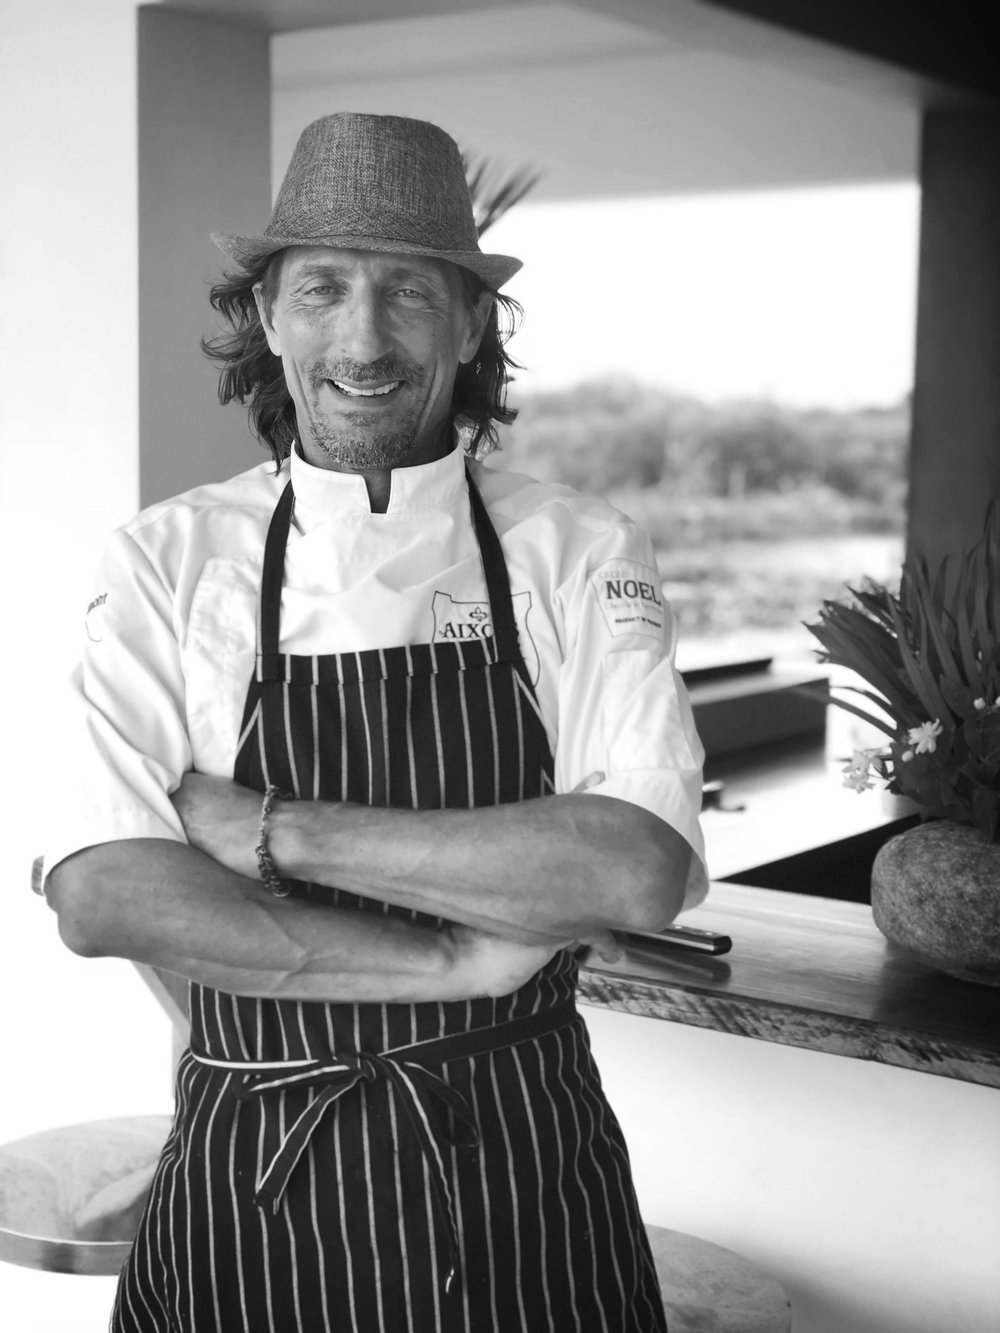 chef-patrick-parmentier-lefoofrog-owner-photo.JPG